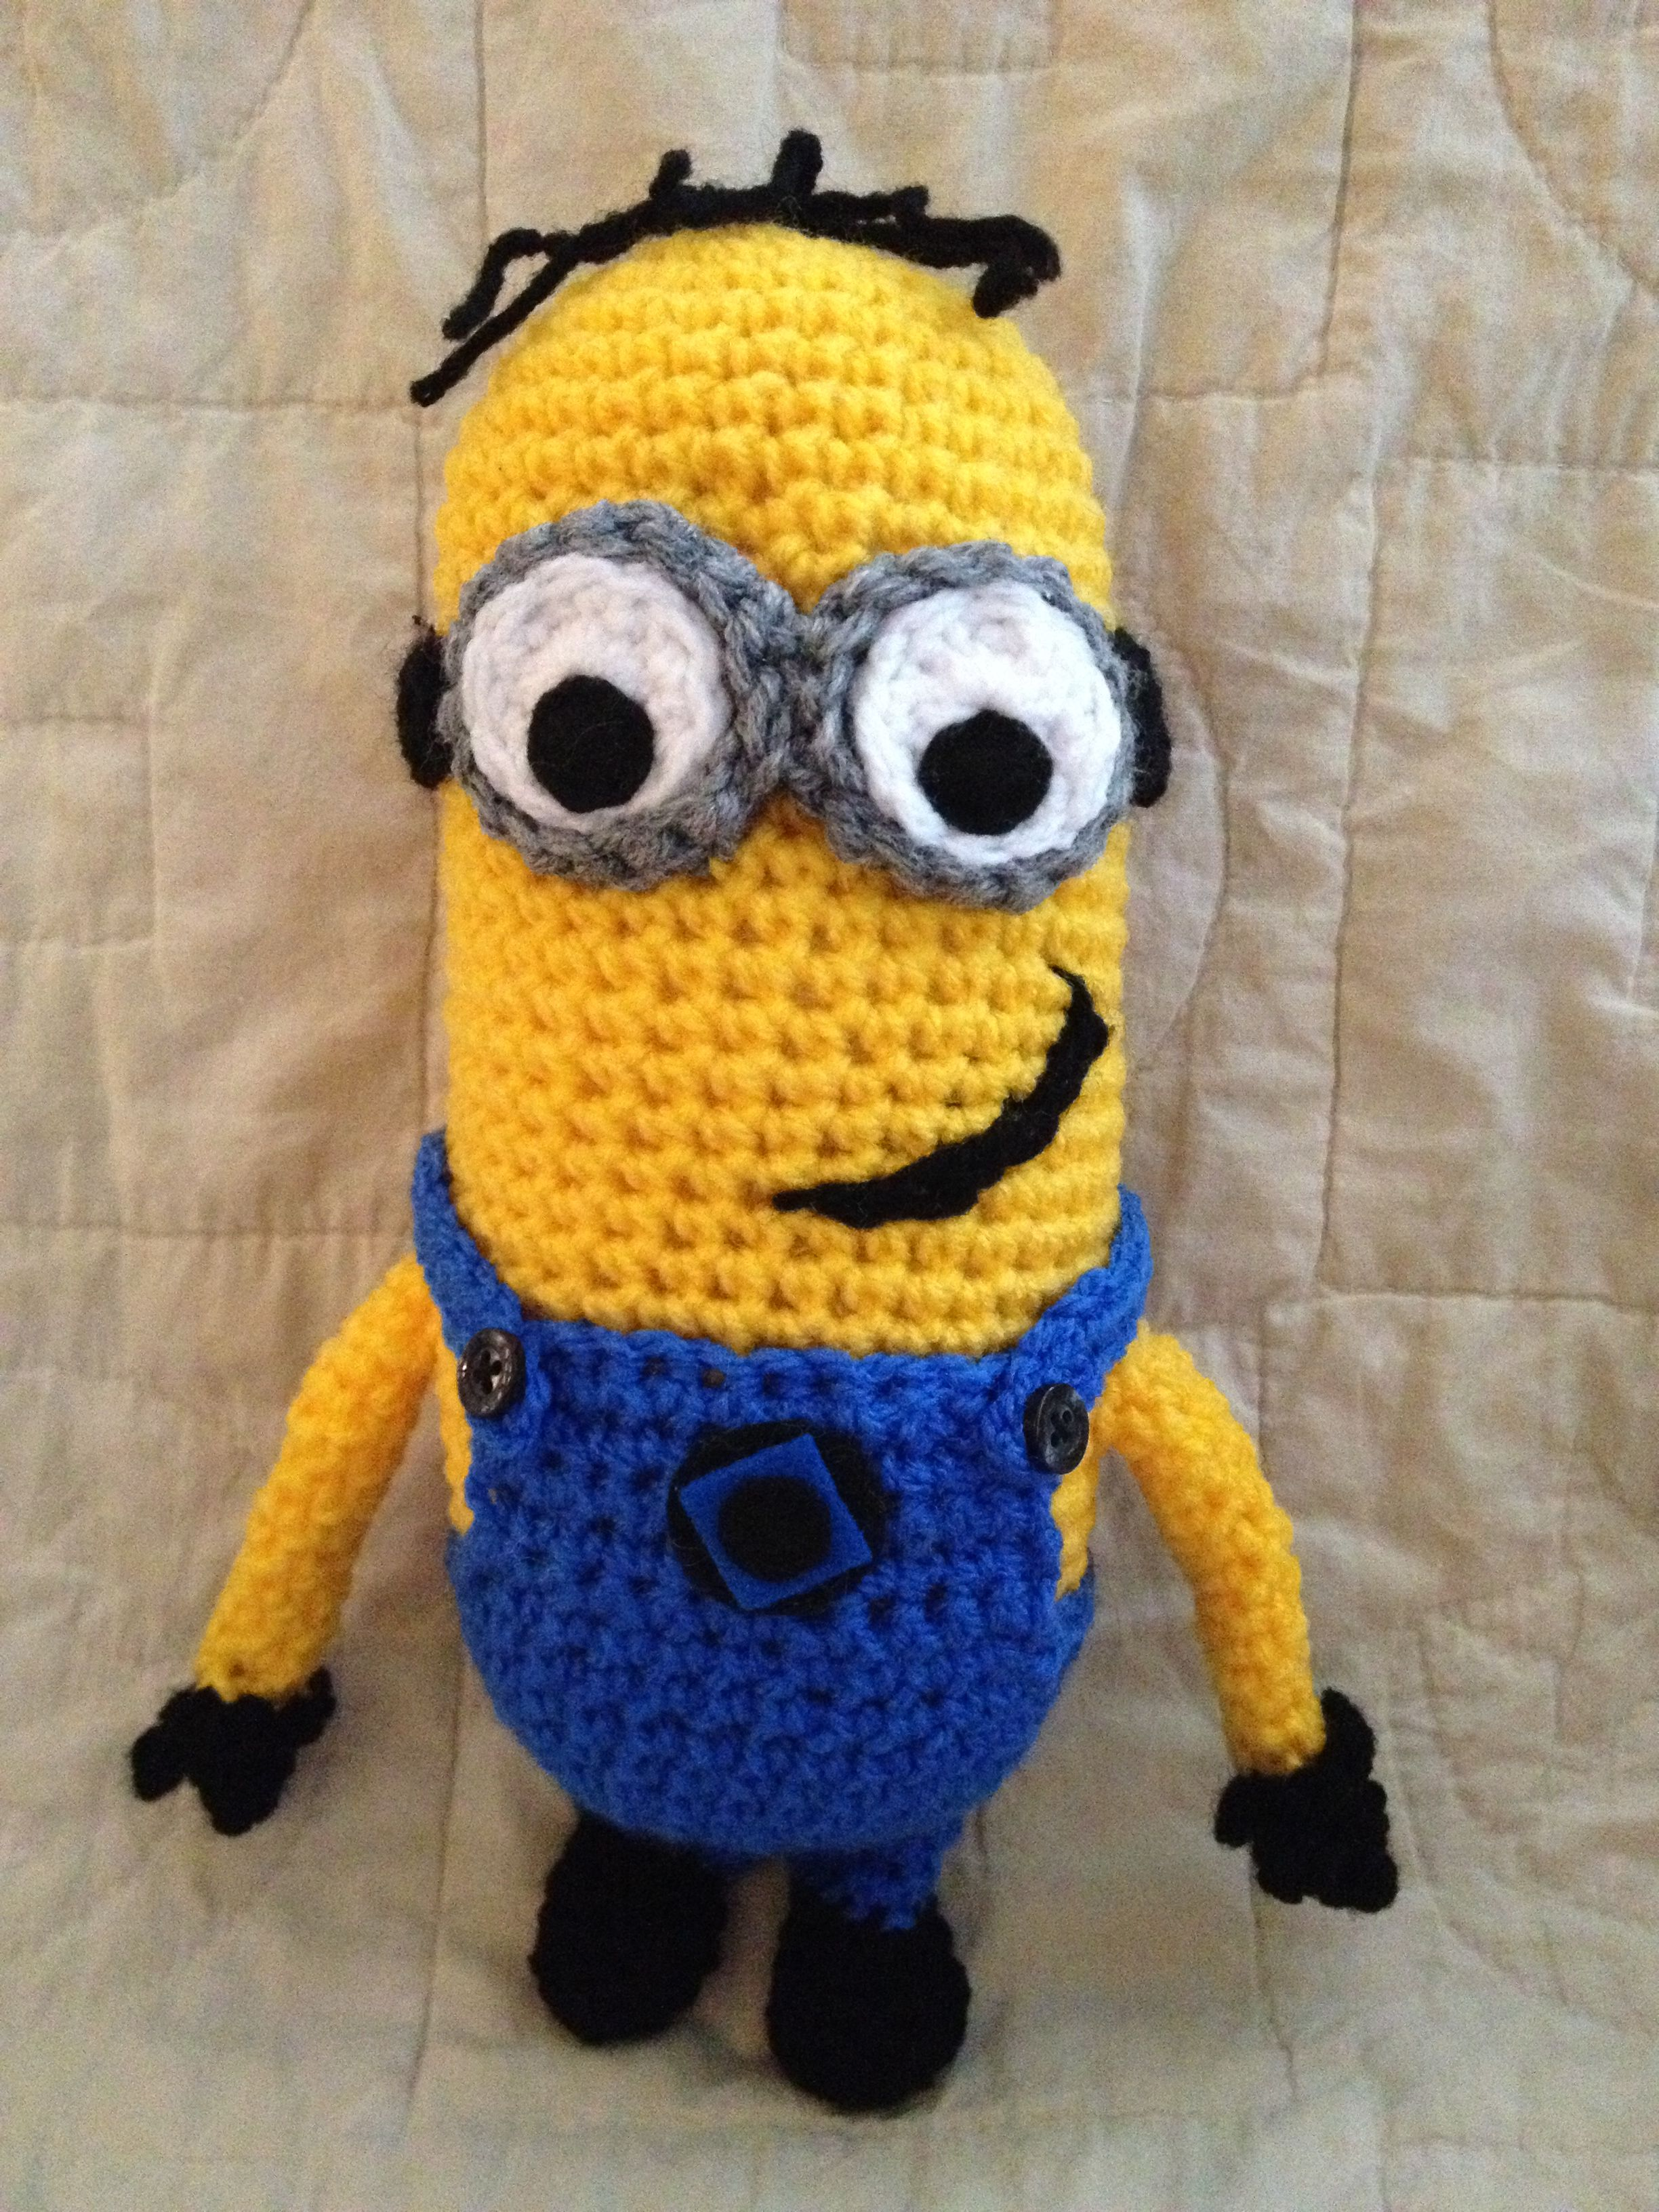 Crochet Minion from Despicable Me. Pattern from collect3d.com. Crochet ~ Kn...